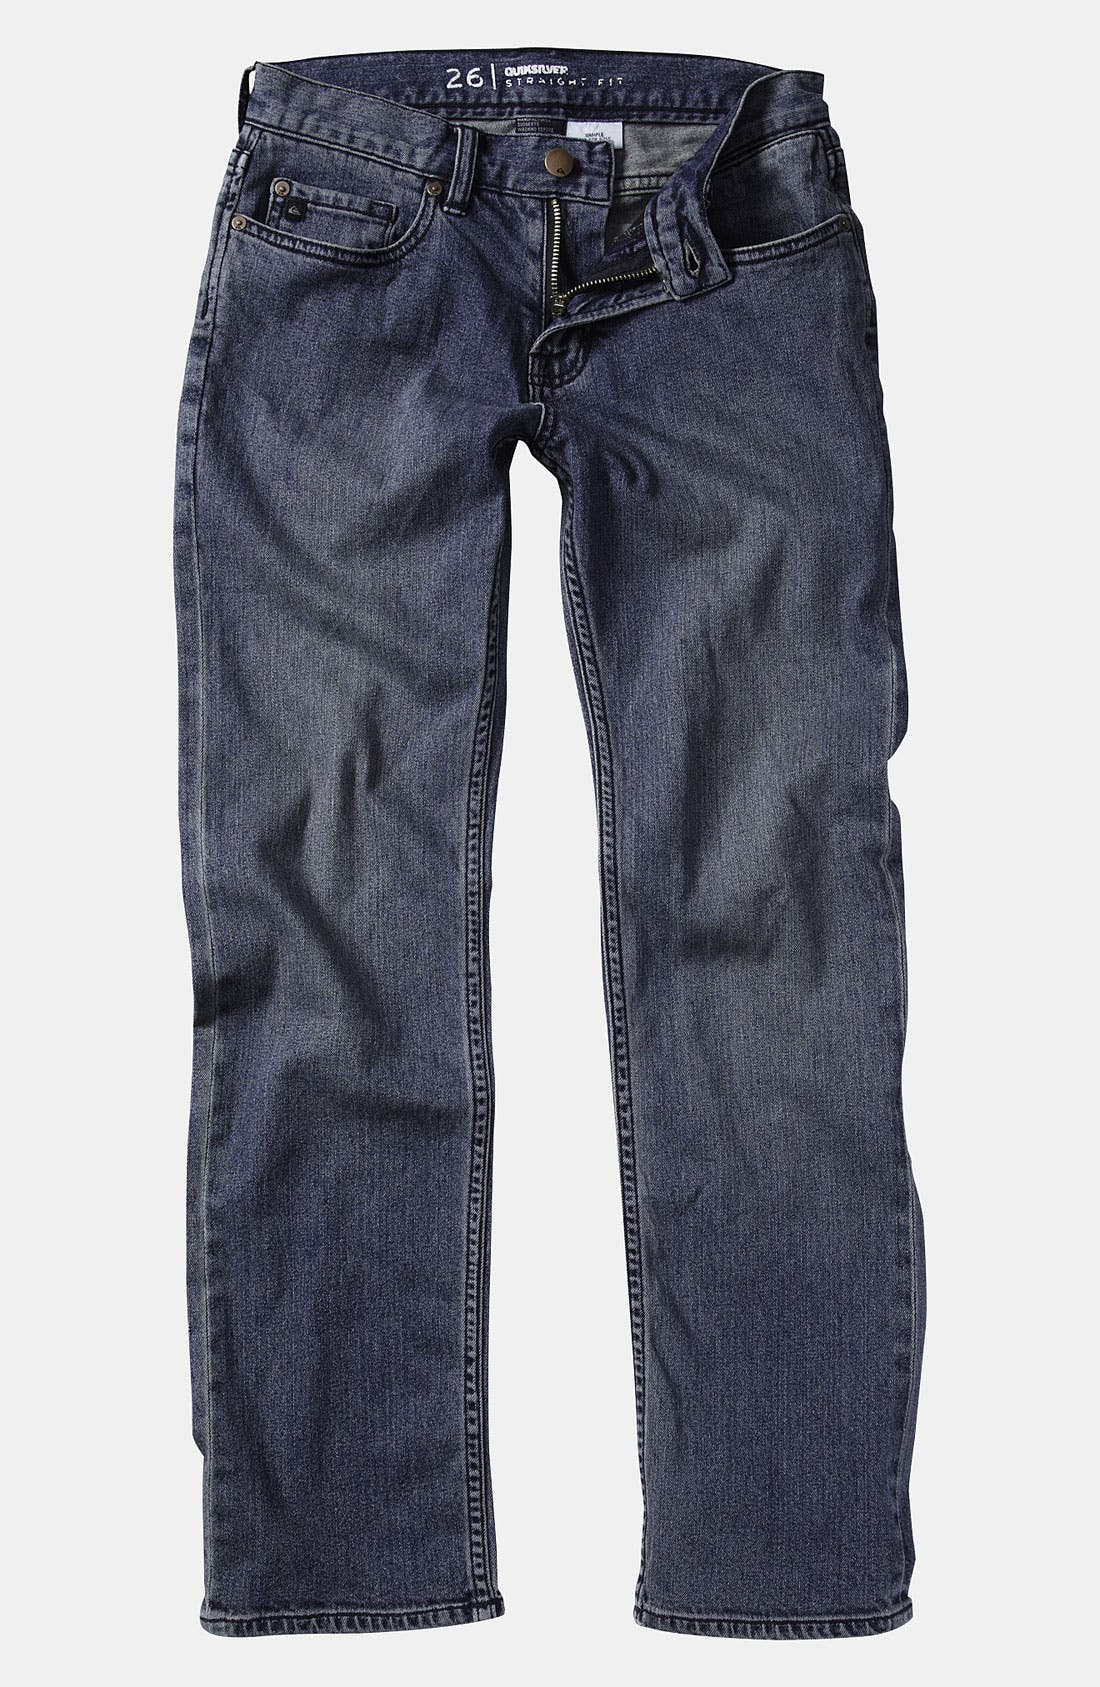 Alternate Image 1 Selected - Quiksilver 'Zeppelin' Jeans (Big Boys)